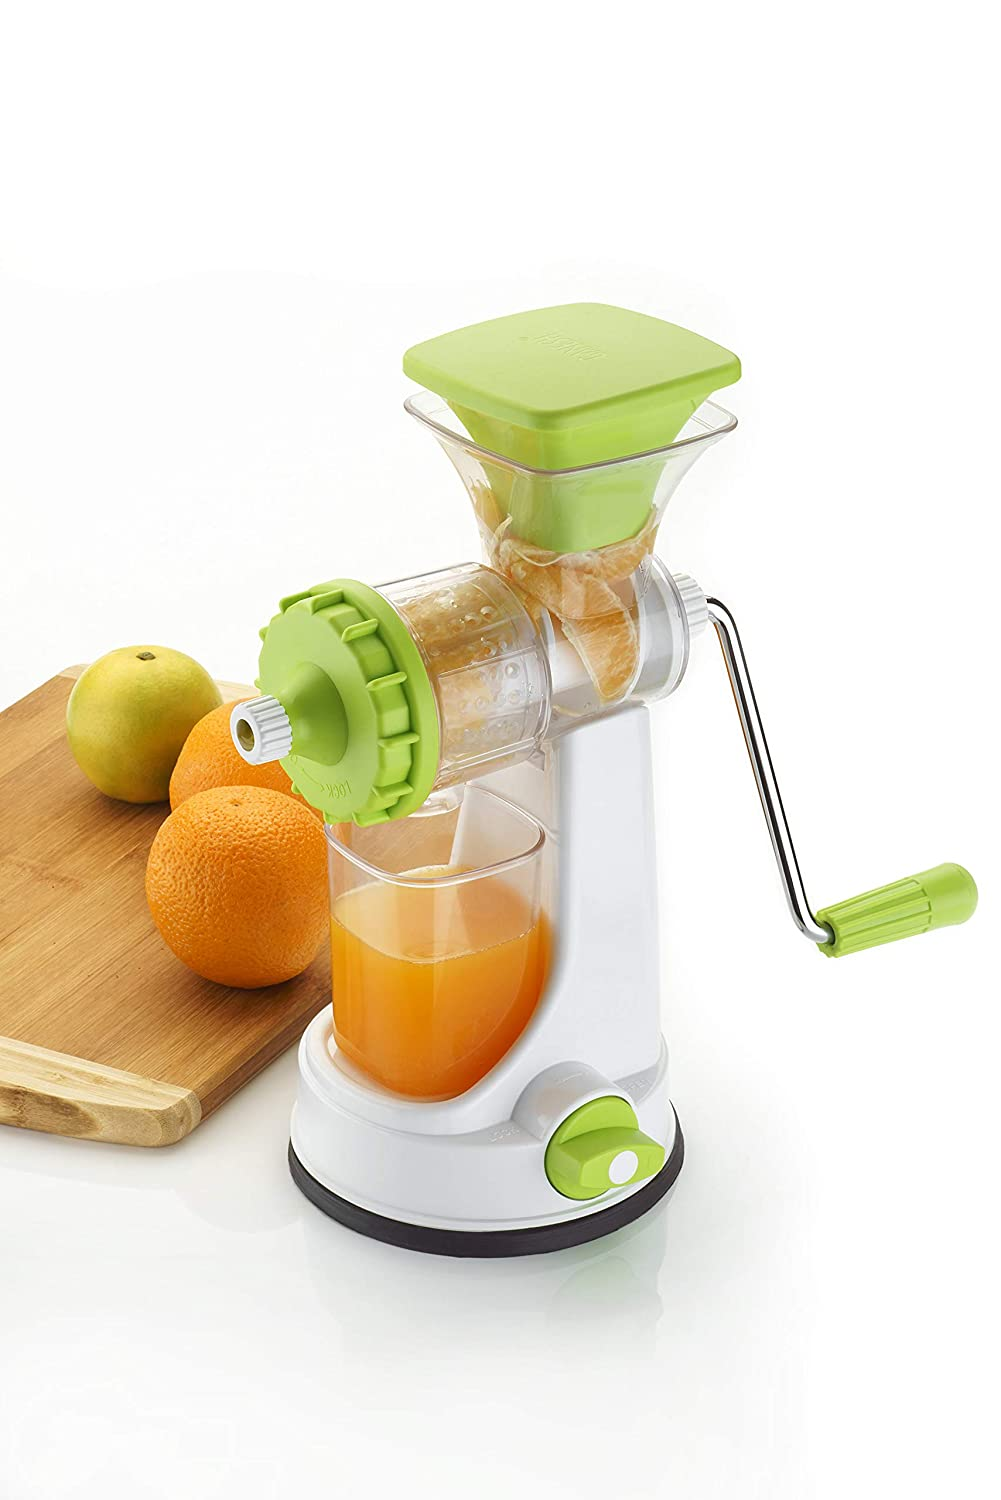 GANESH FRUIT AND VEGETABLE STEEL HANDLE HANDE JUICER - Gogia bartan store